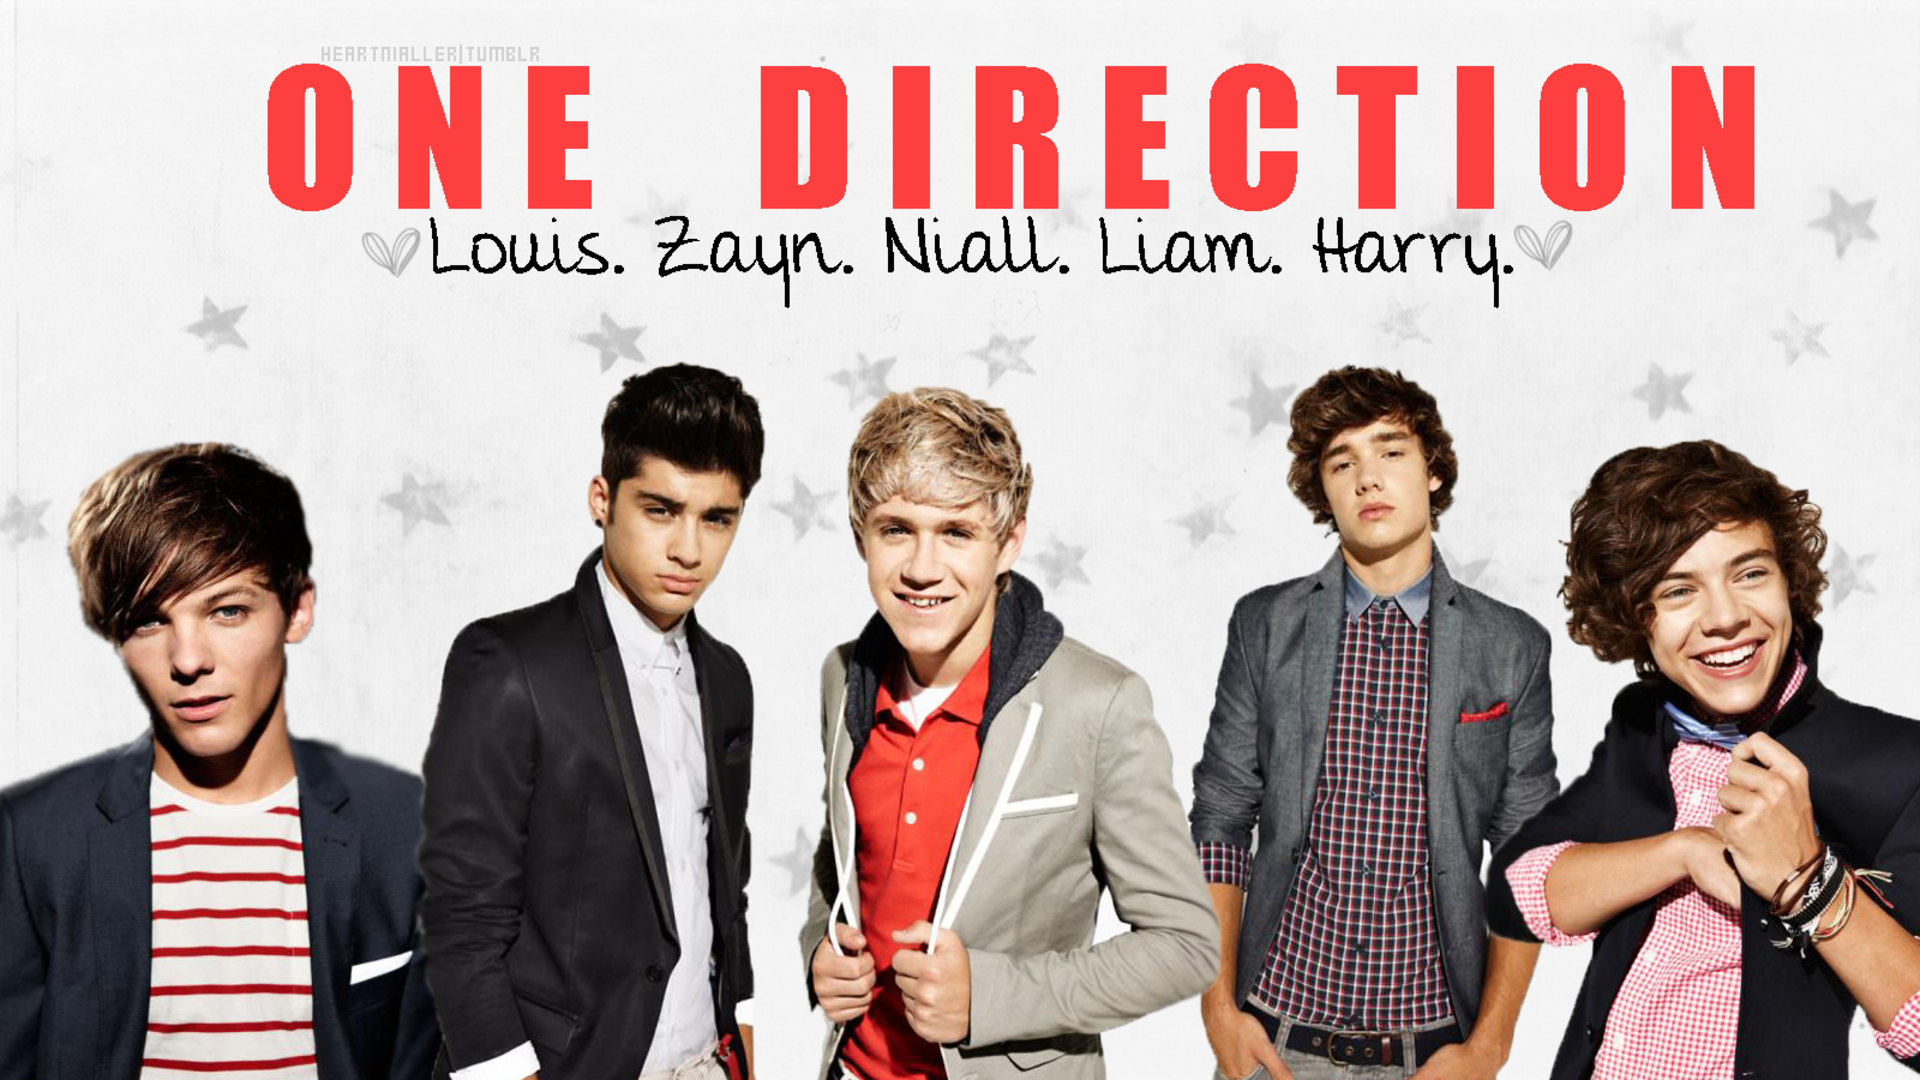 One Direction Wallpaper 2013